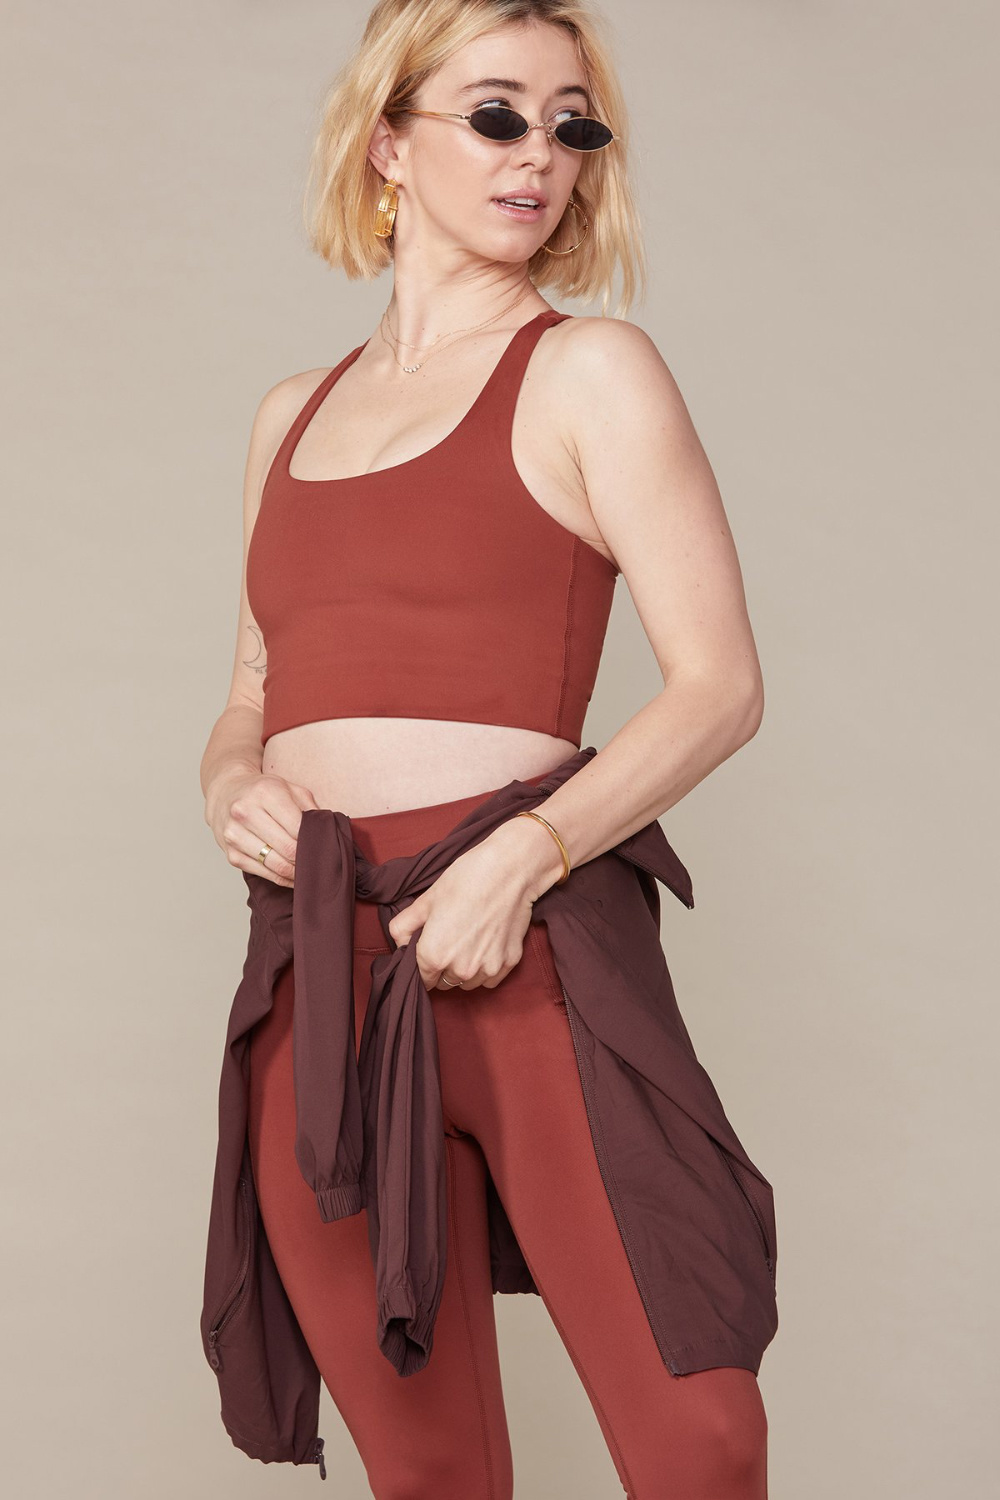 Girlfriend Collective Paloma Bra in Sedona